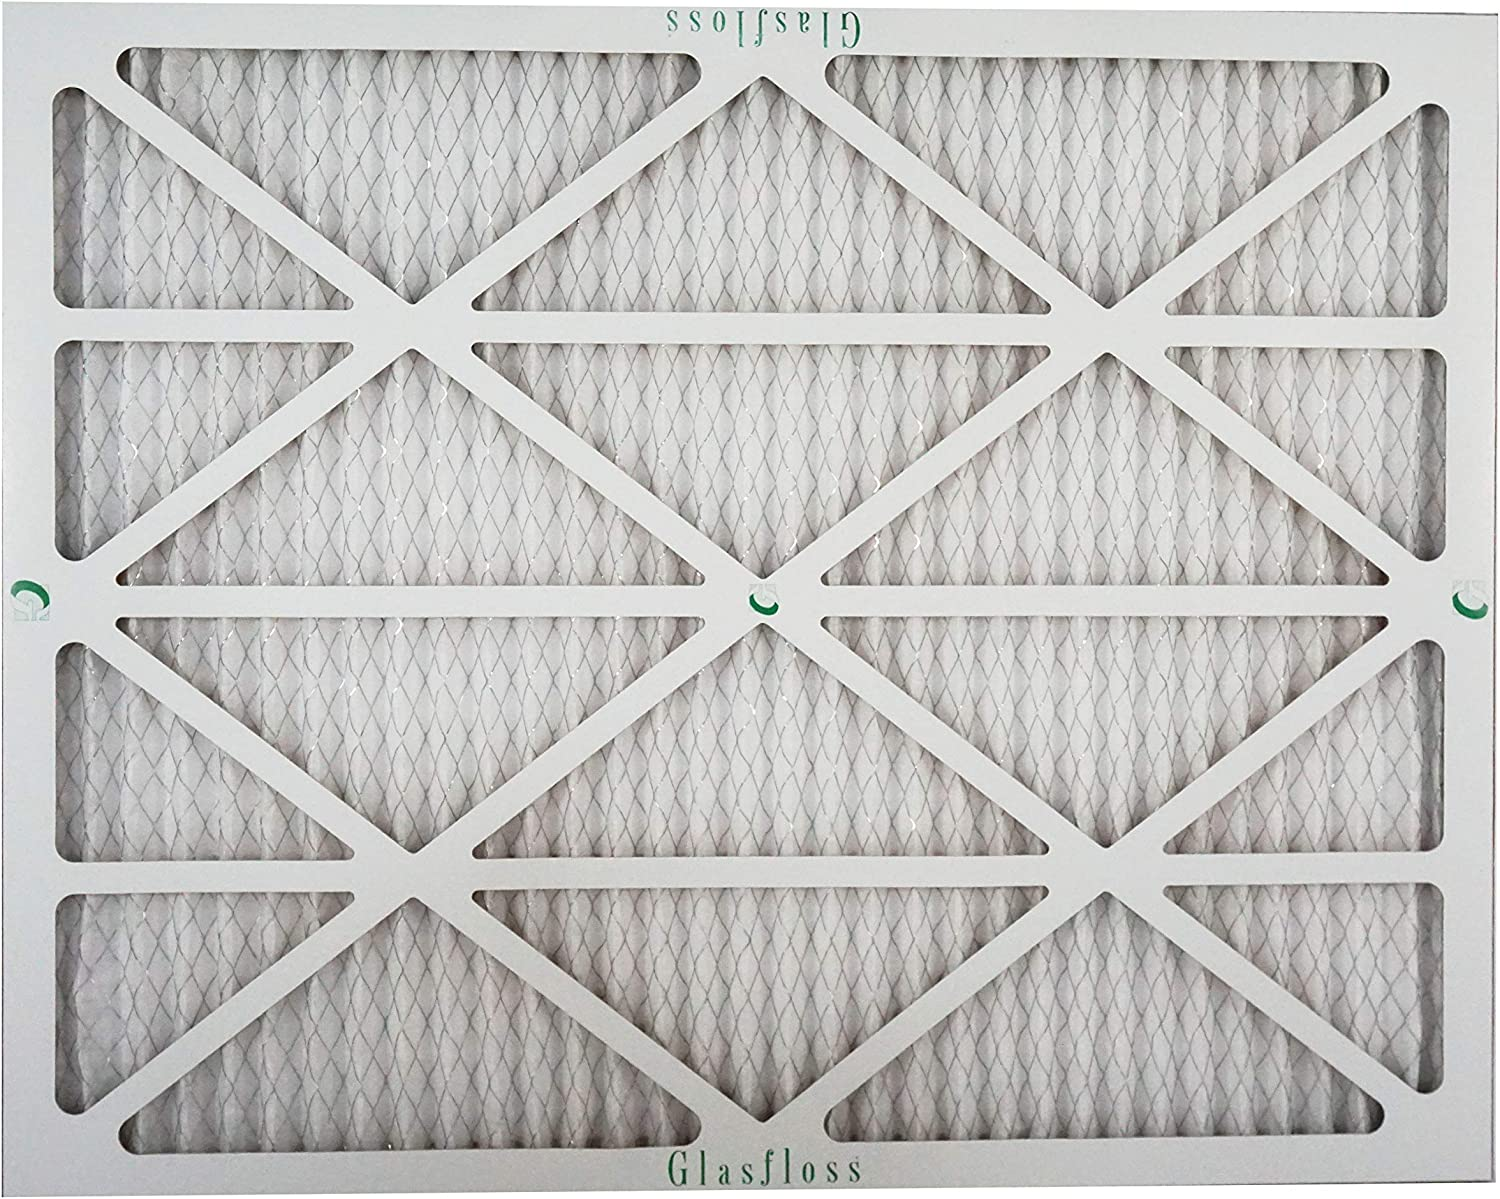 Glasfloss 16x25x1 MERV 10 Pleated AC Furnace Filter- Pack of 12 Proudly Made In The USA.